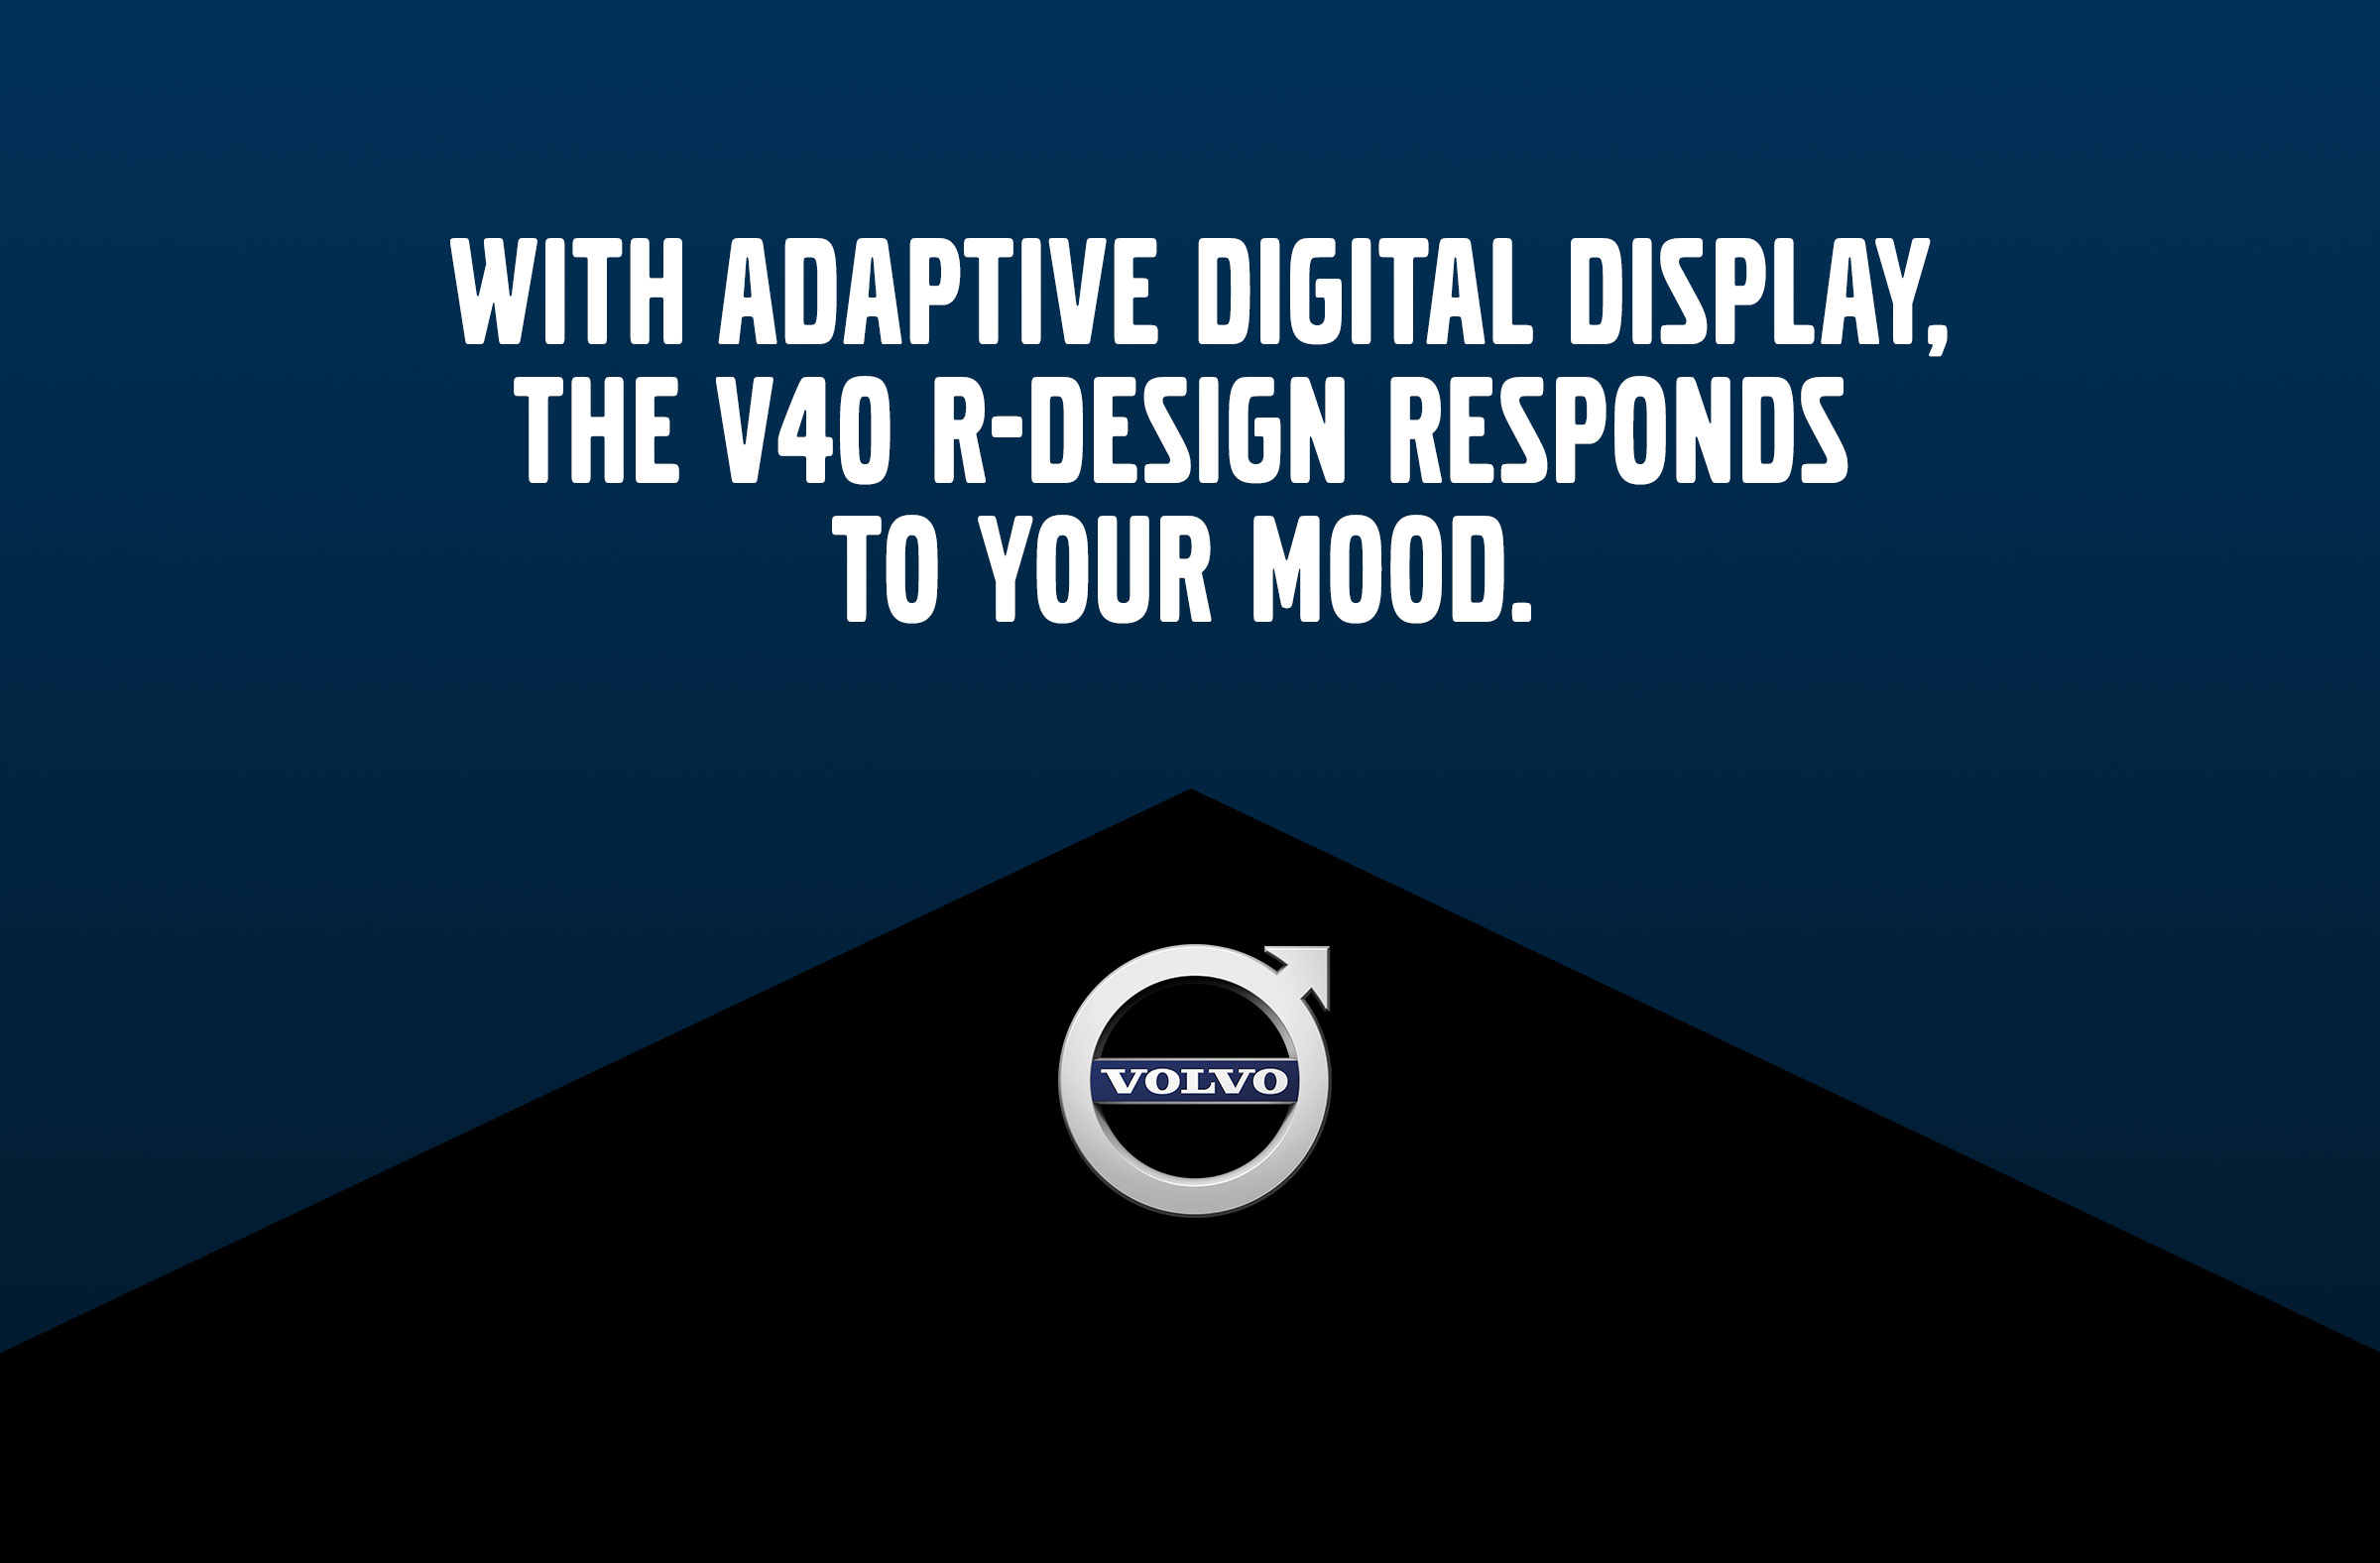 With Adaptive Digital Display, the V40 R-Design responds to your mood.